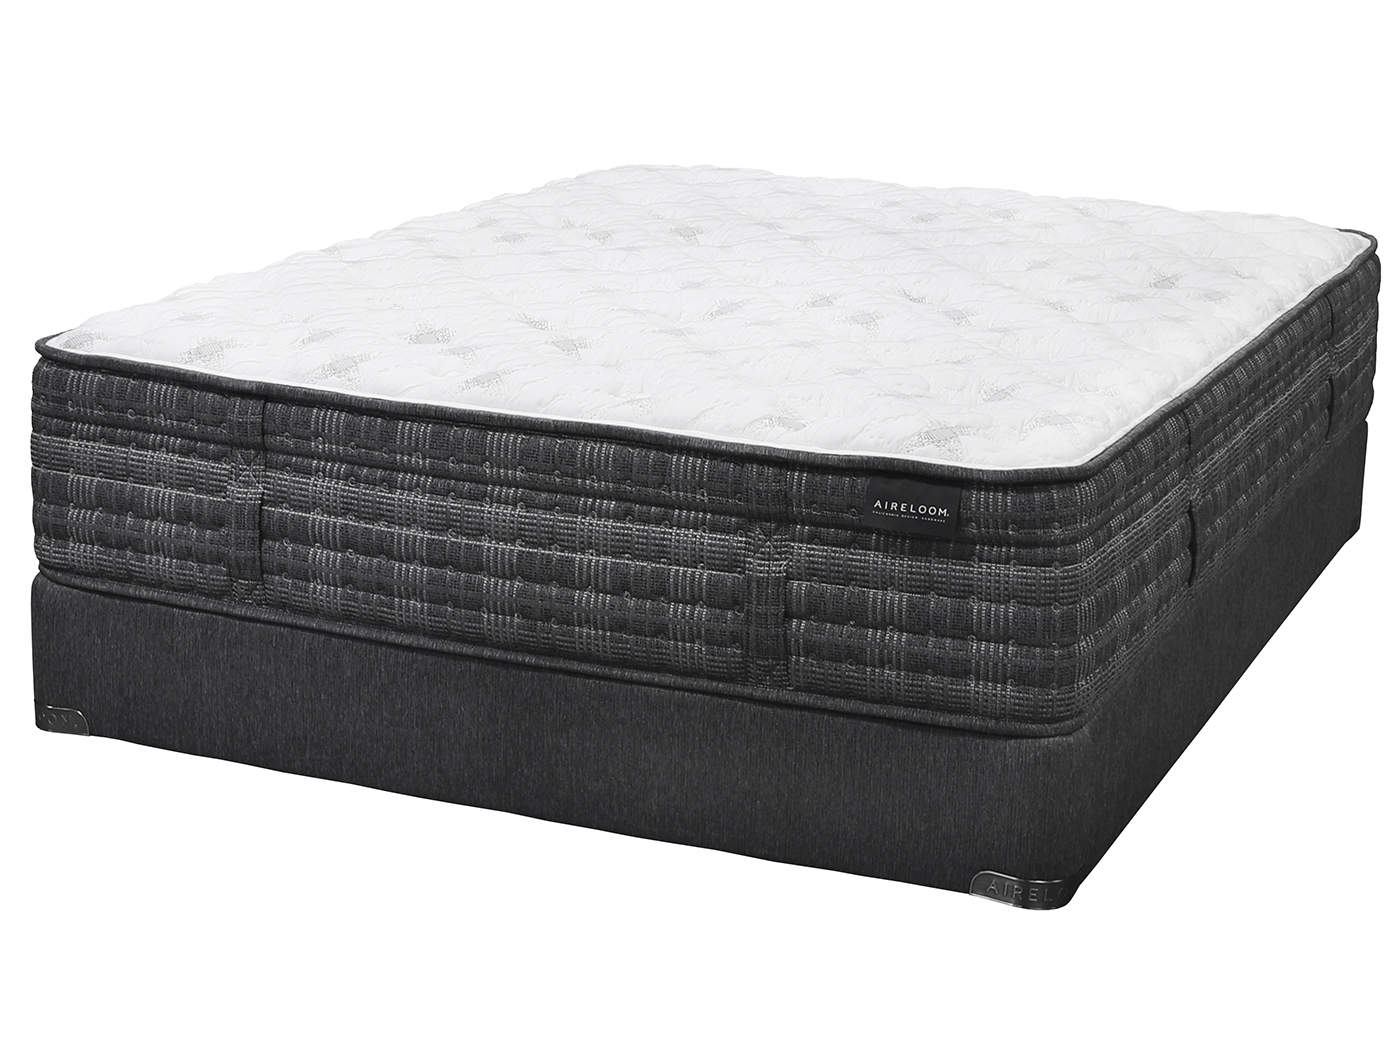 Aireloom Platinum Preferred Millbrae Luxury Firm Queen Mattress